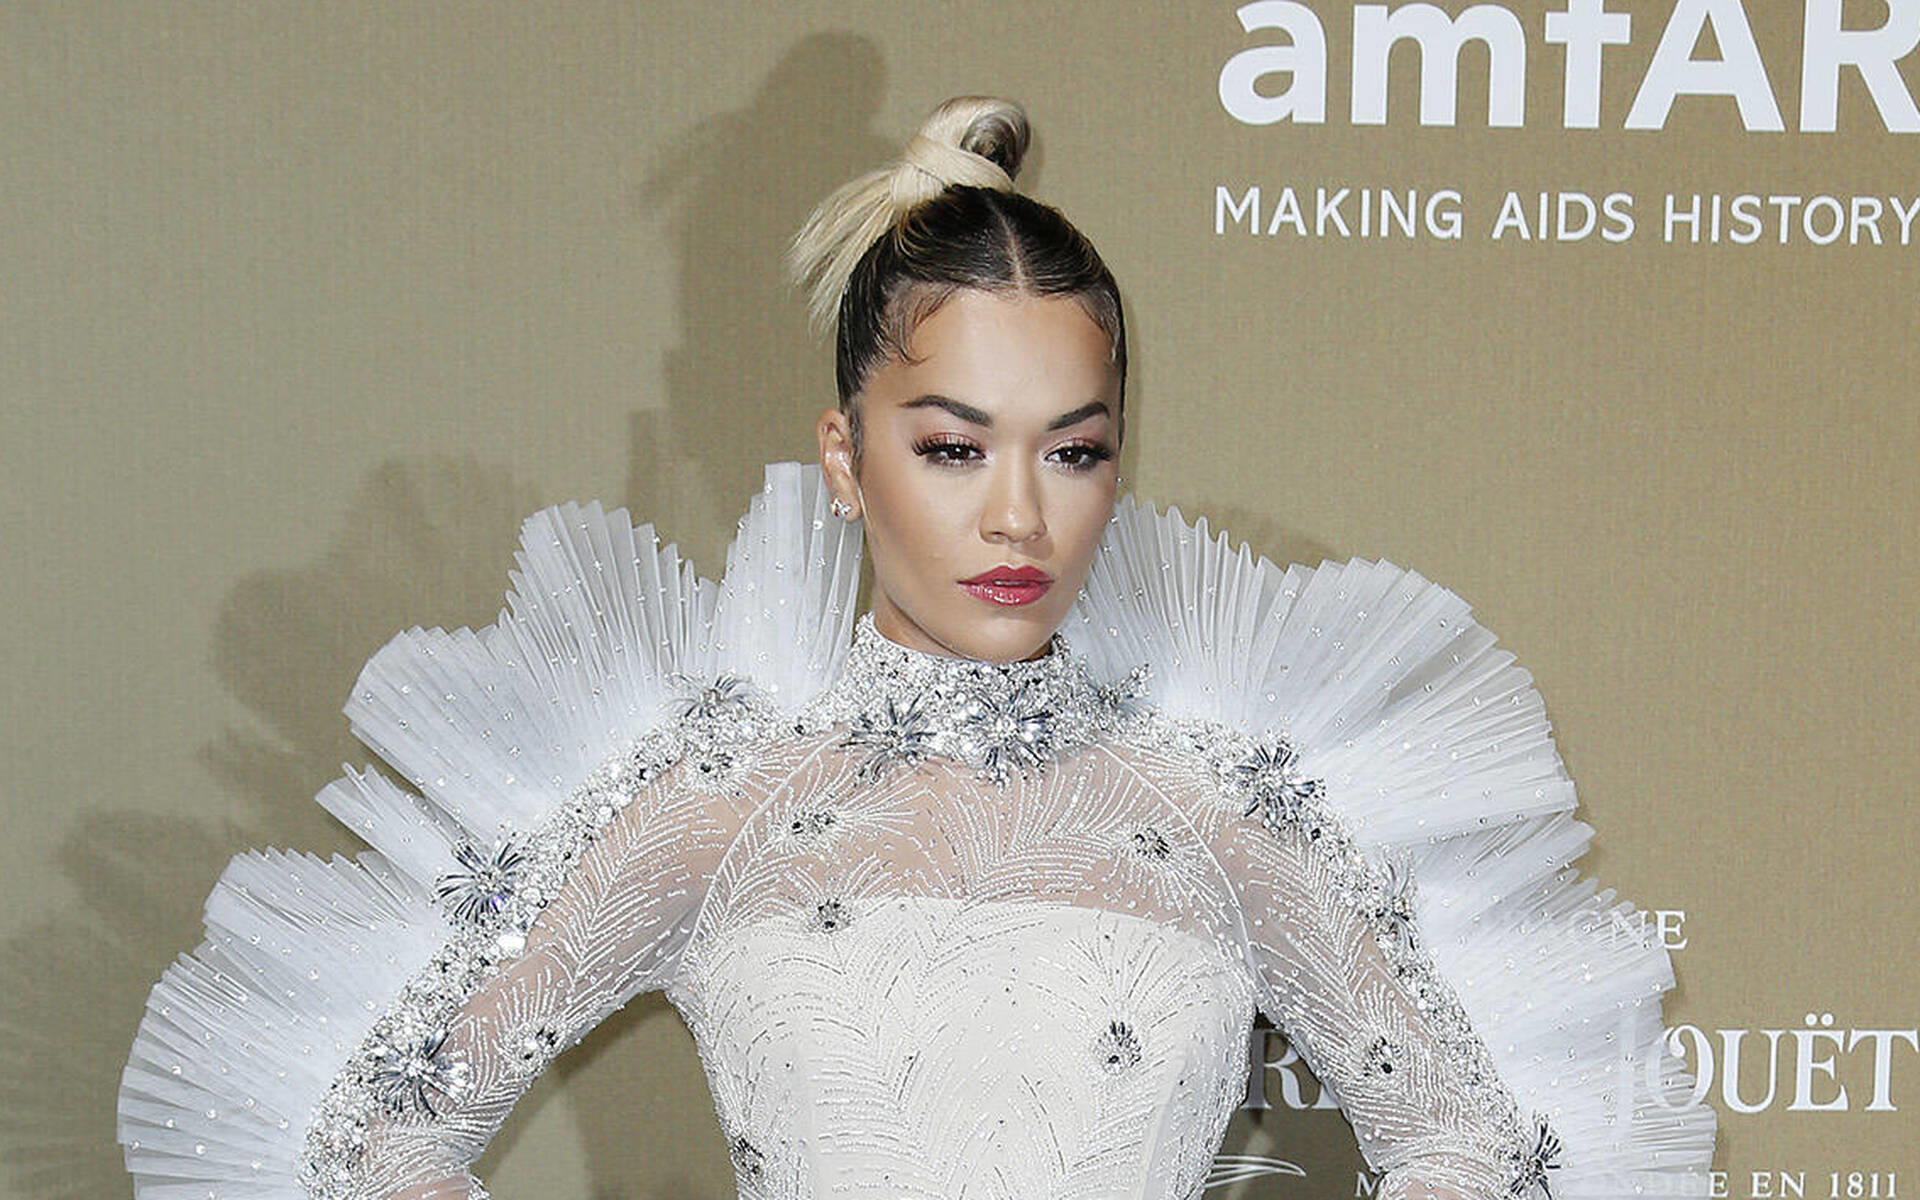 Am Filmset kennengelernt: Rita Ora datet Jude Laws Sohn